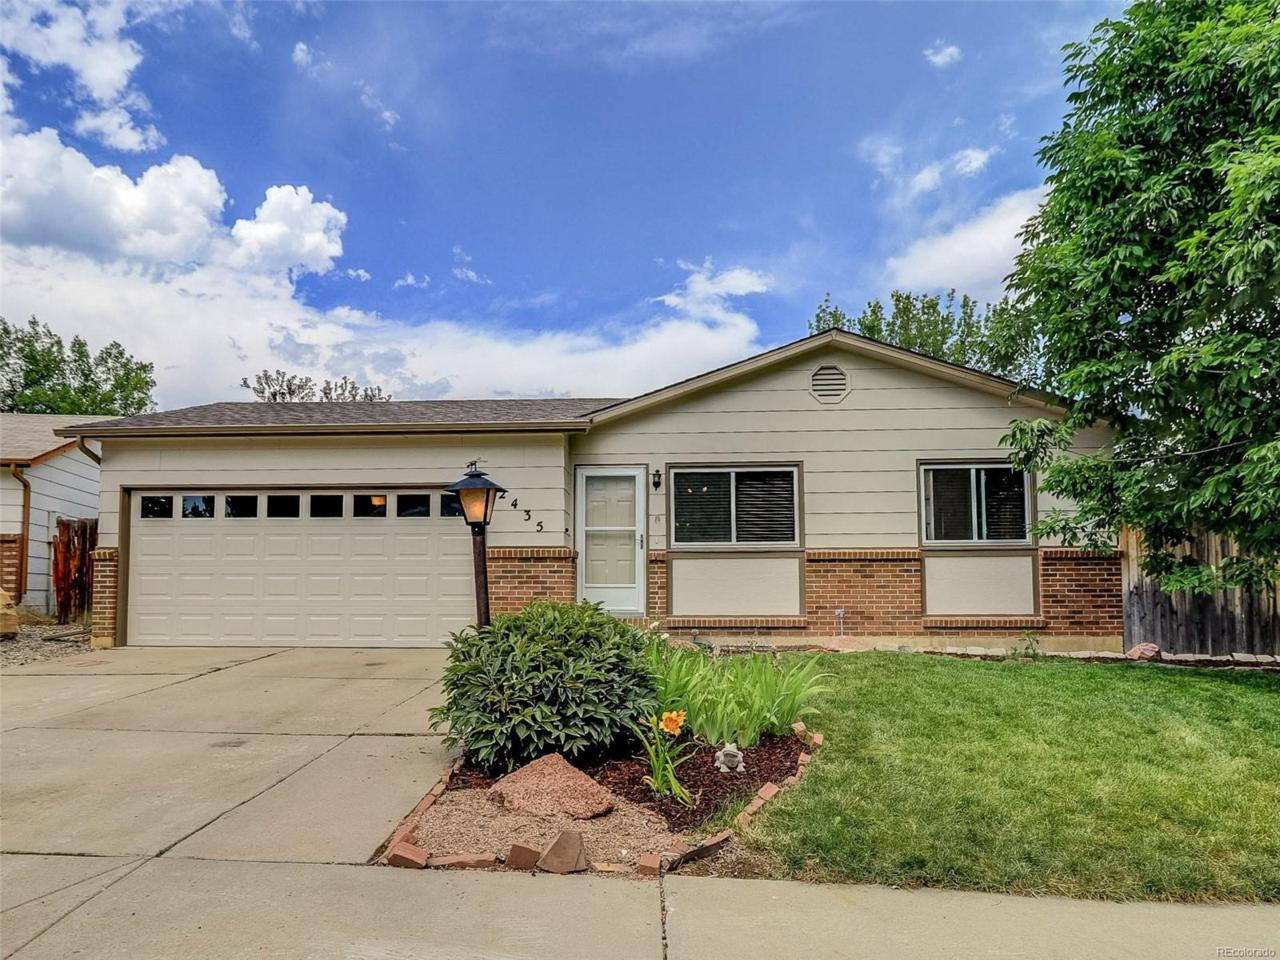 2435 Dawn Court, Loveland, CO 80537 (MLS #4827089) :: 8z Real Estate